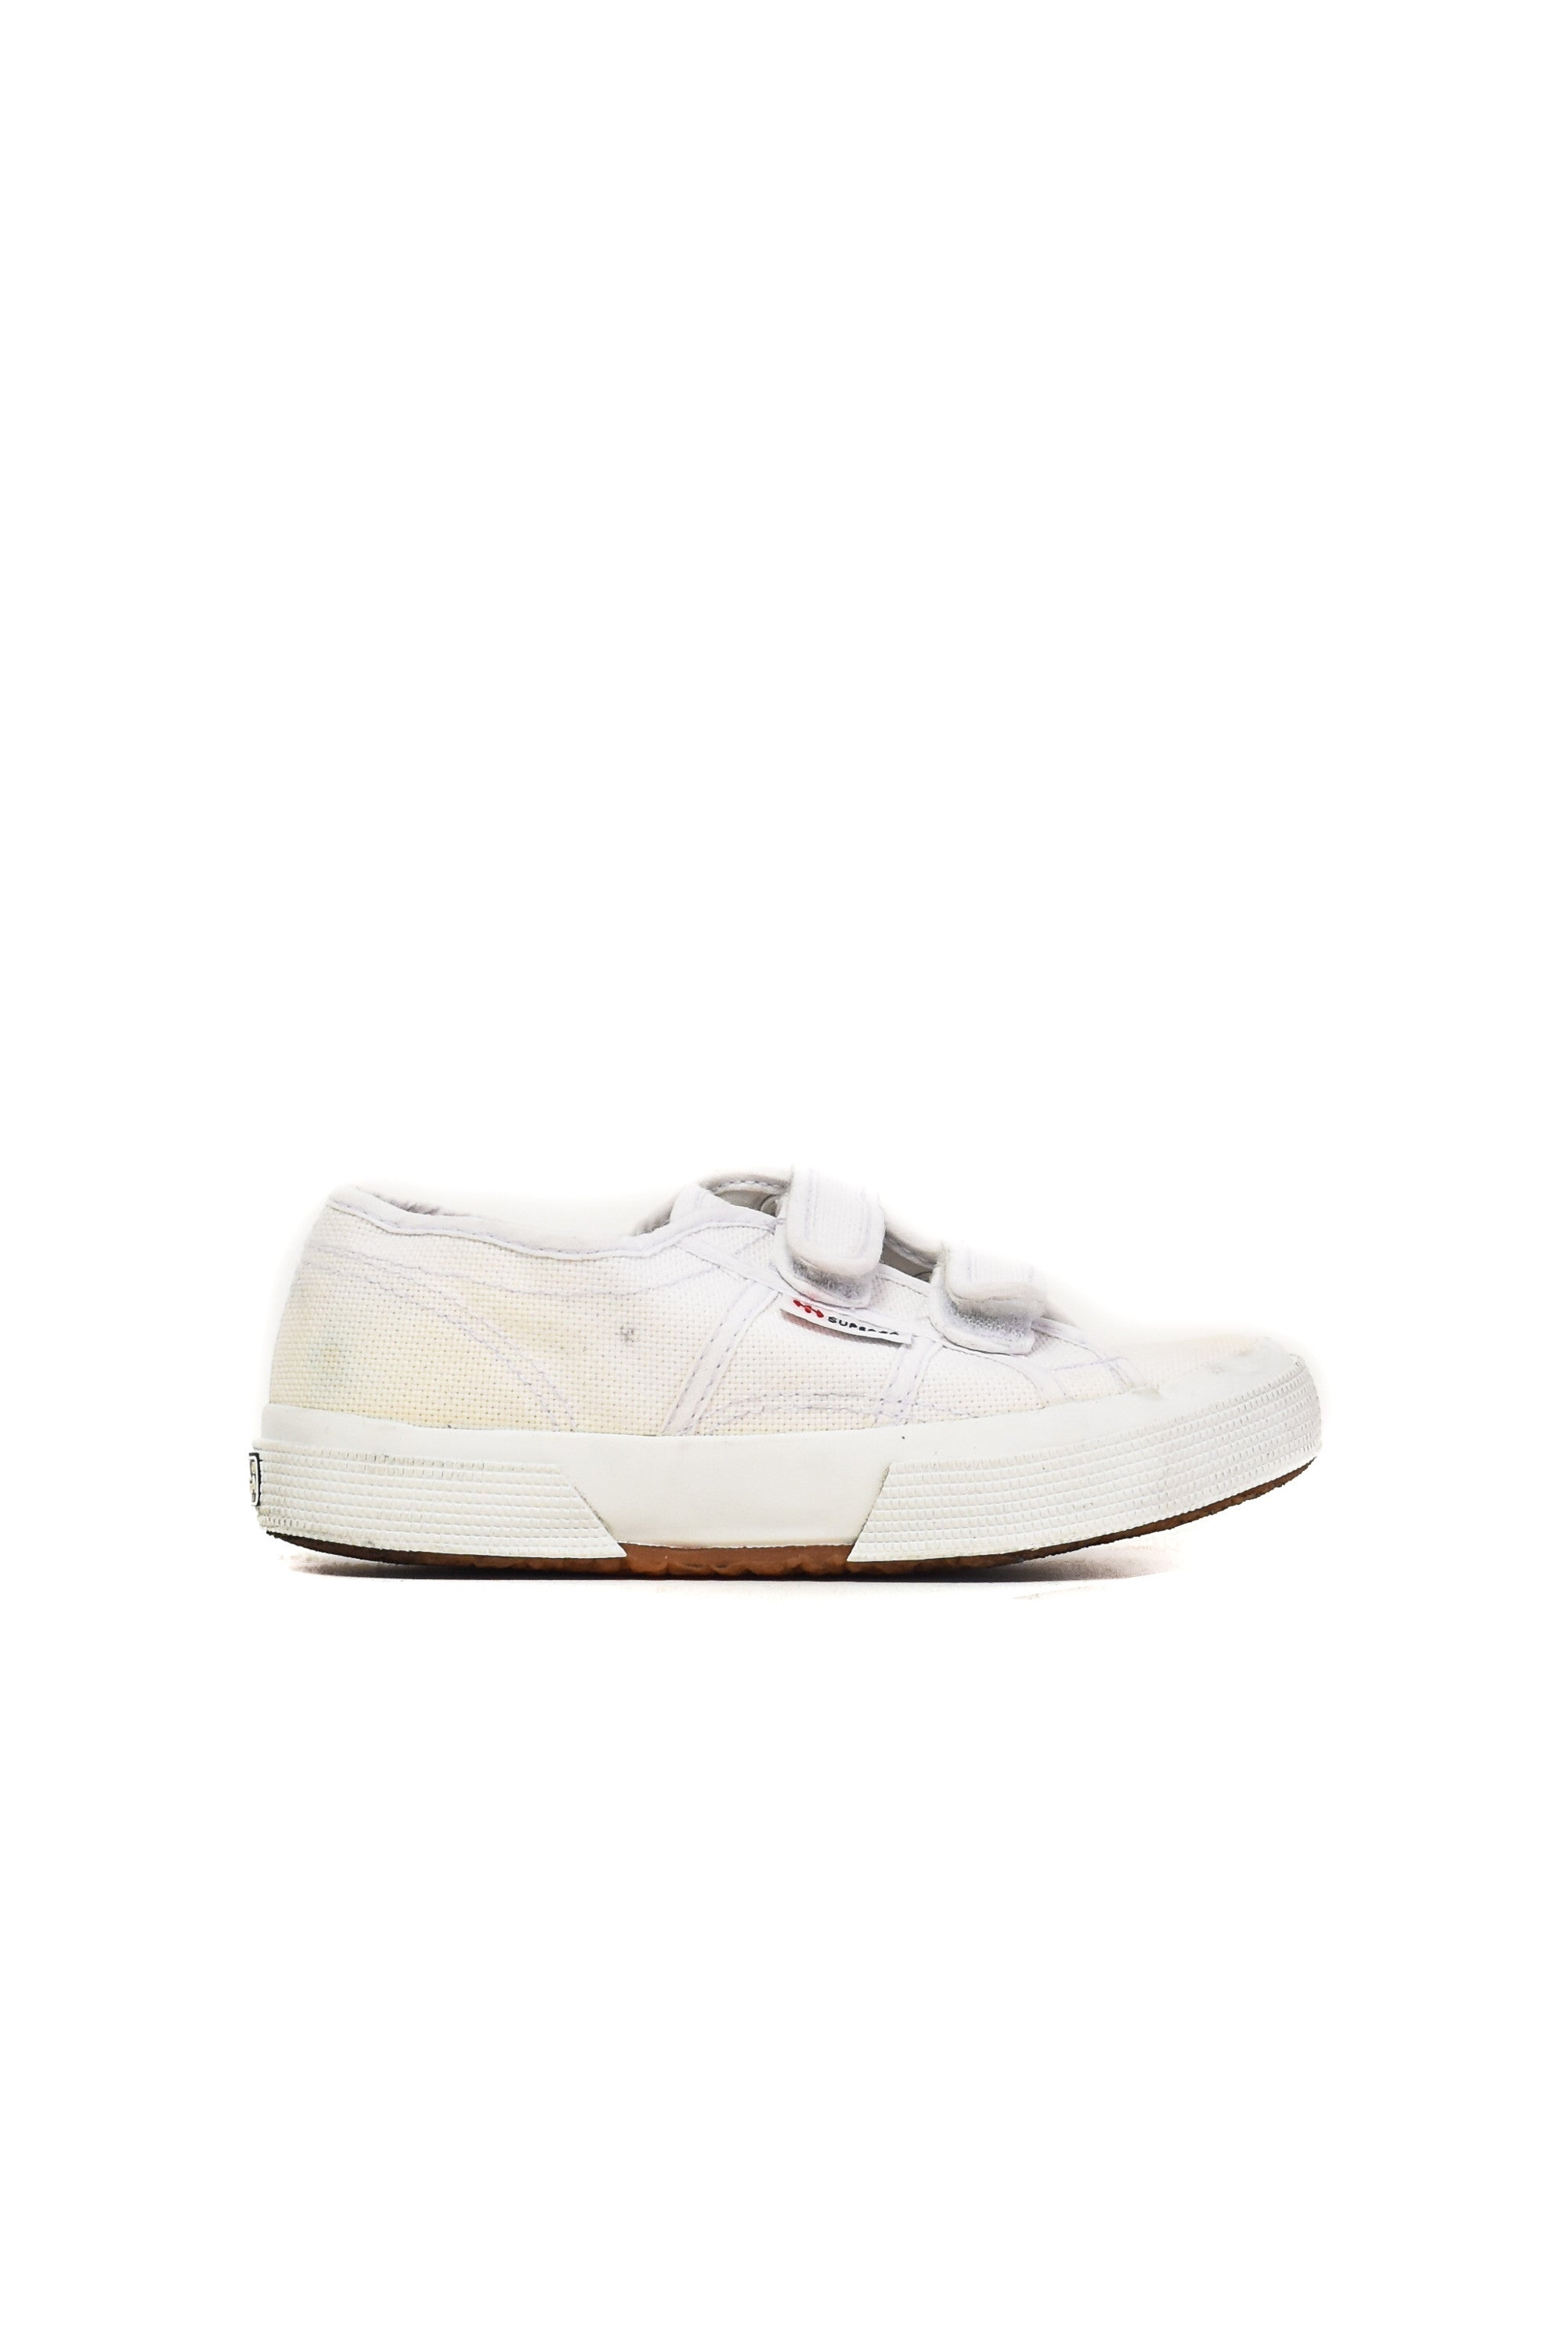 10003752 Superga Kids~Shoes 6T (EU 30) at Retykle